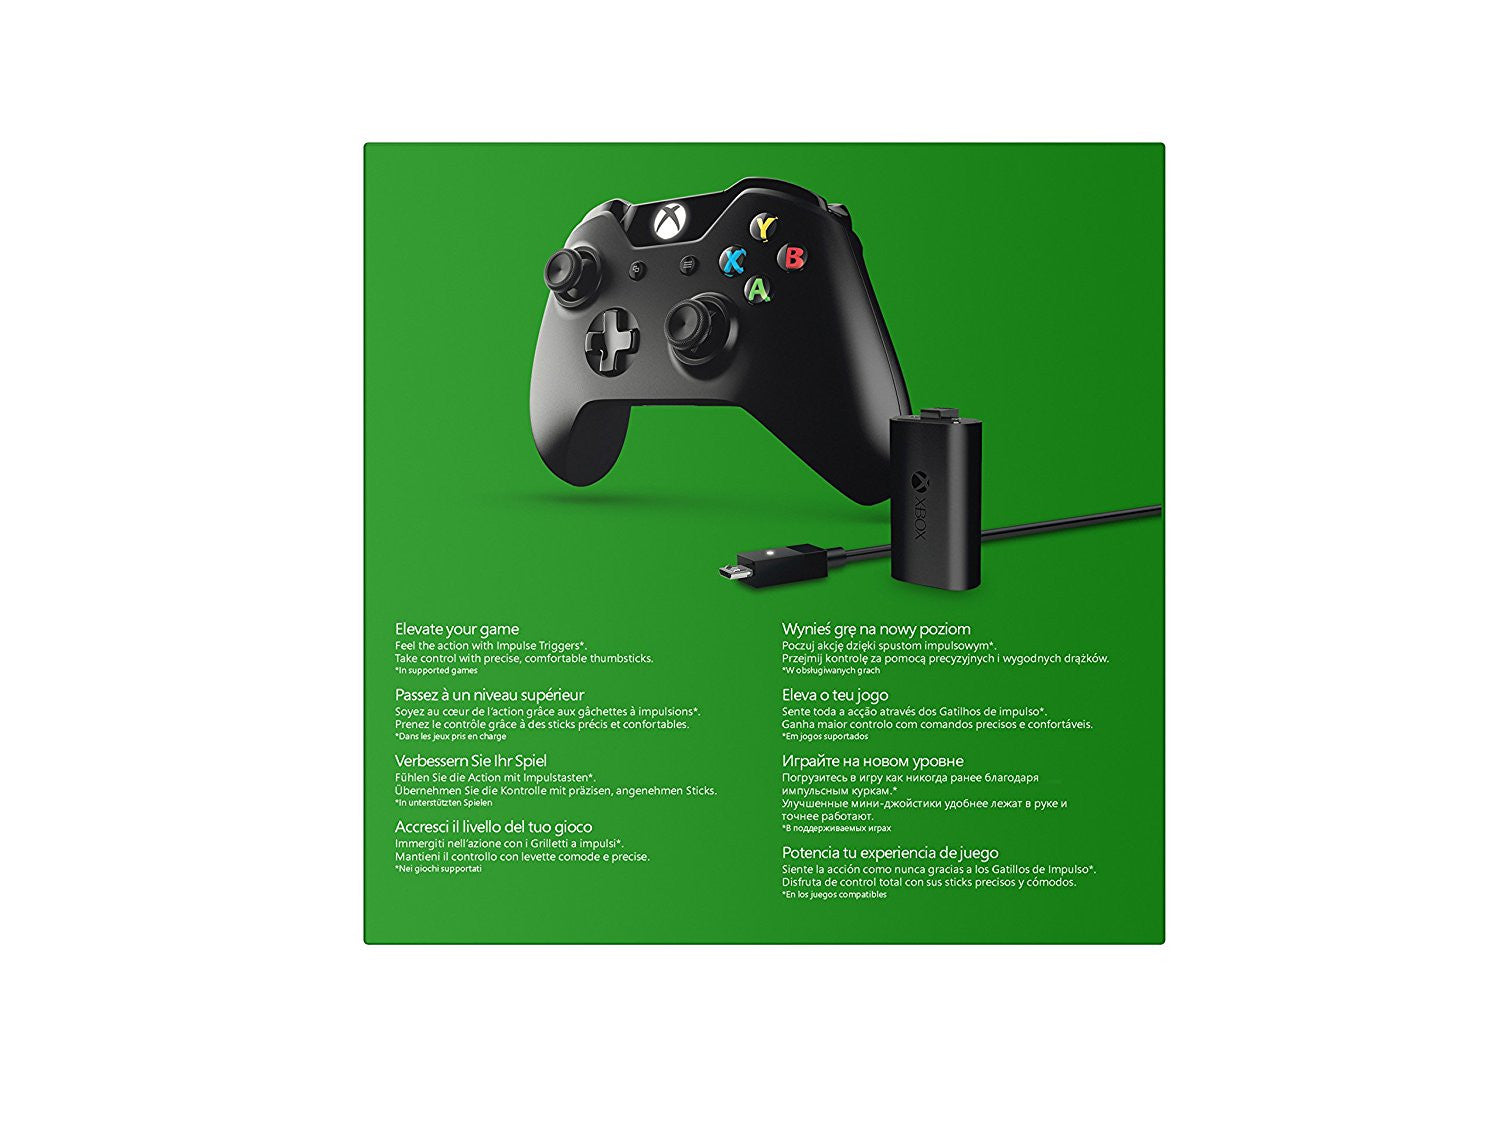 Official Xbox One Wireless Controller with Play and Charge Kit